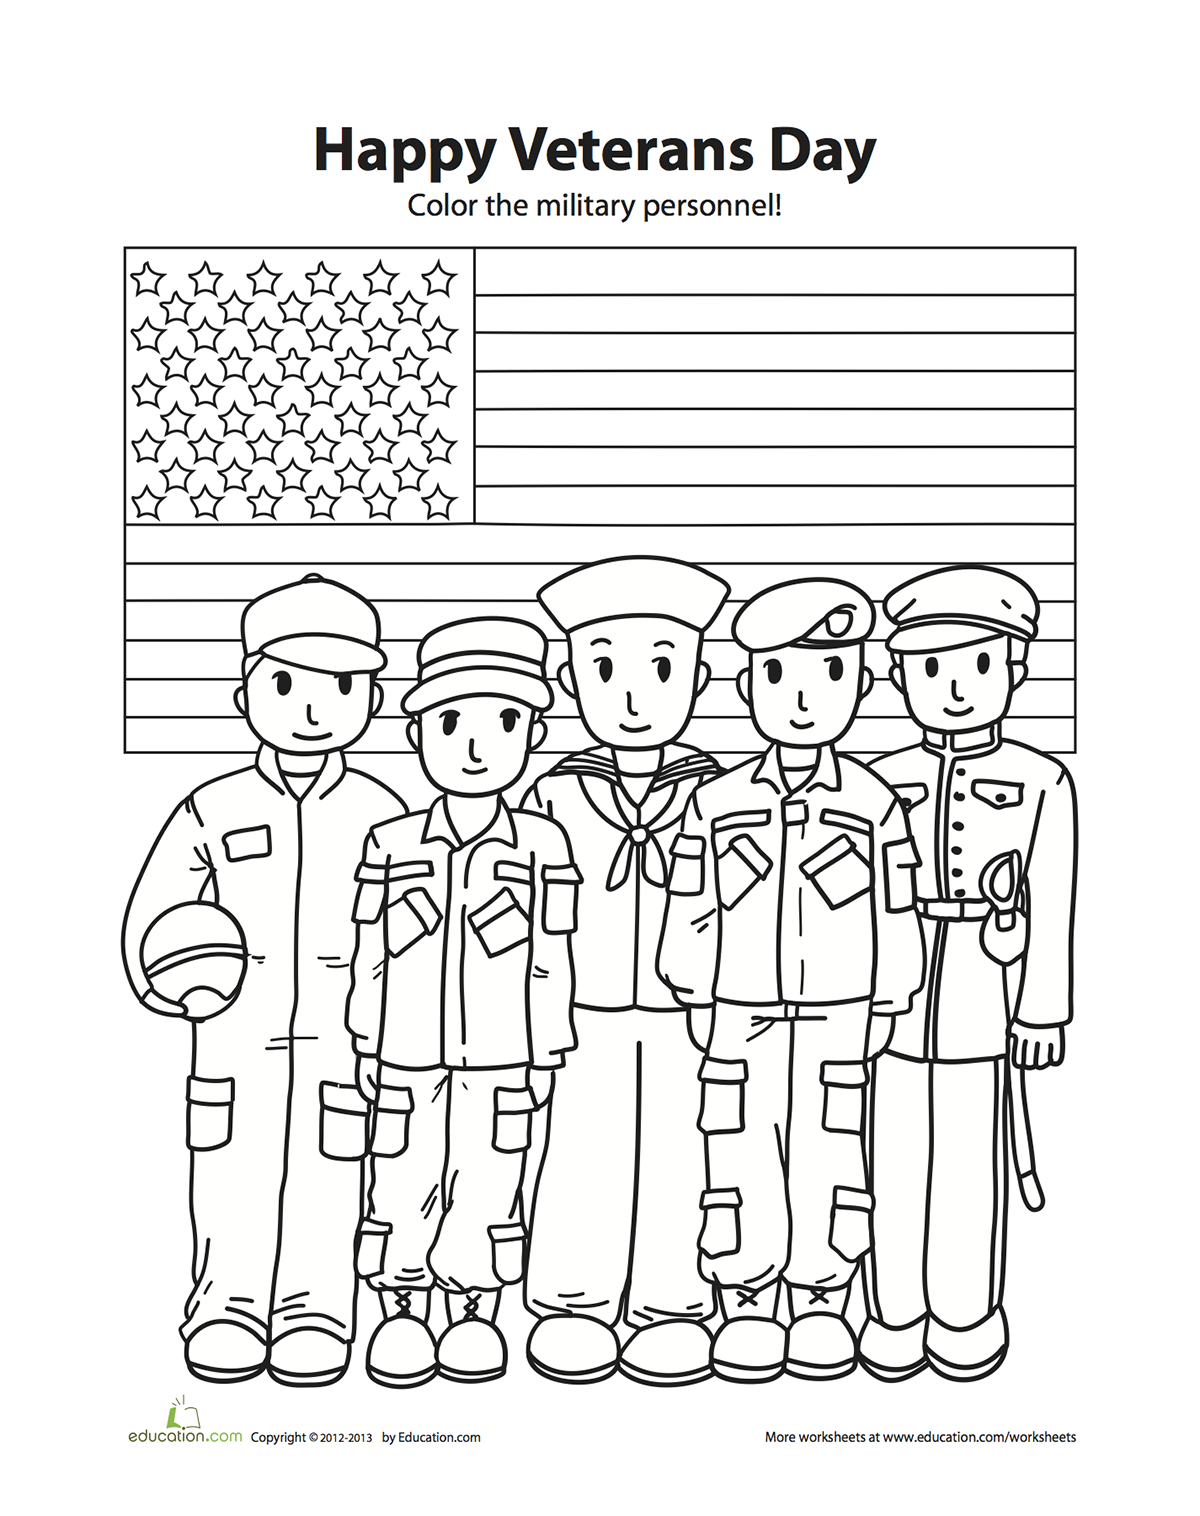 Veteran S Day Coloring Sheet Veterans Day Coloring Page Veterans Day Activities Free Veterans Day